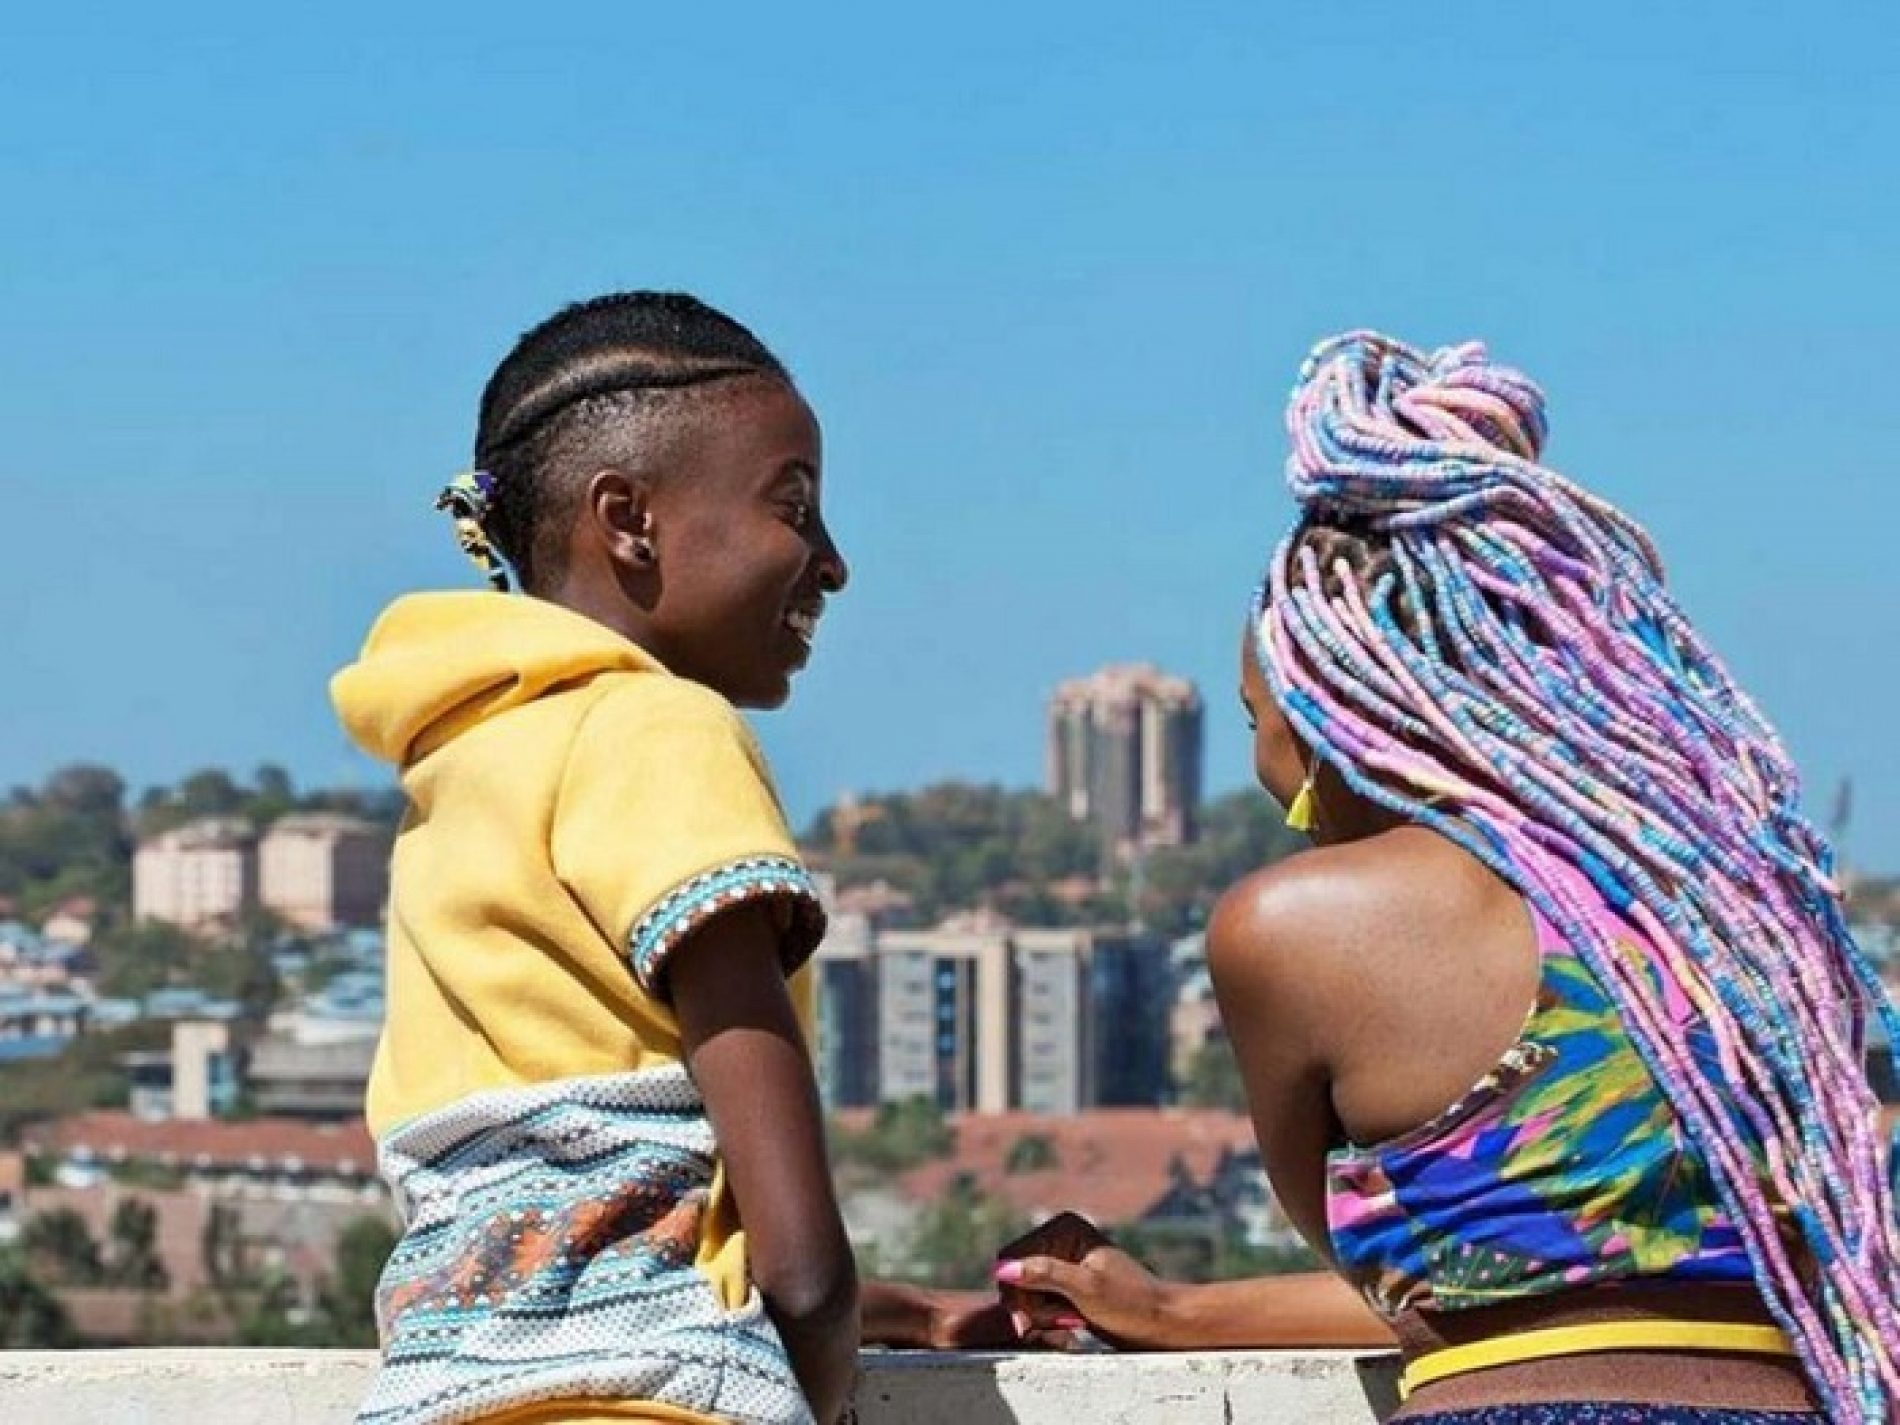 RAFIKI IS A NECESSARY STORY (A Movie Review)